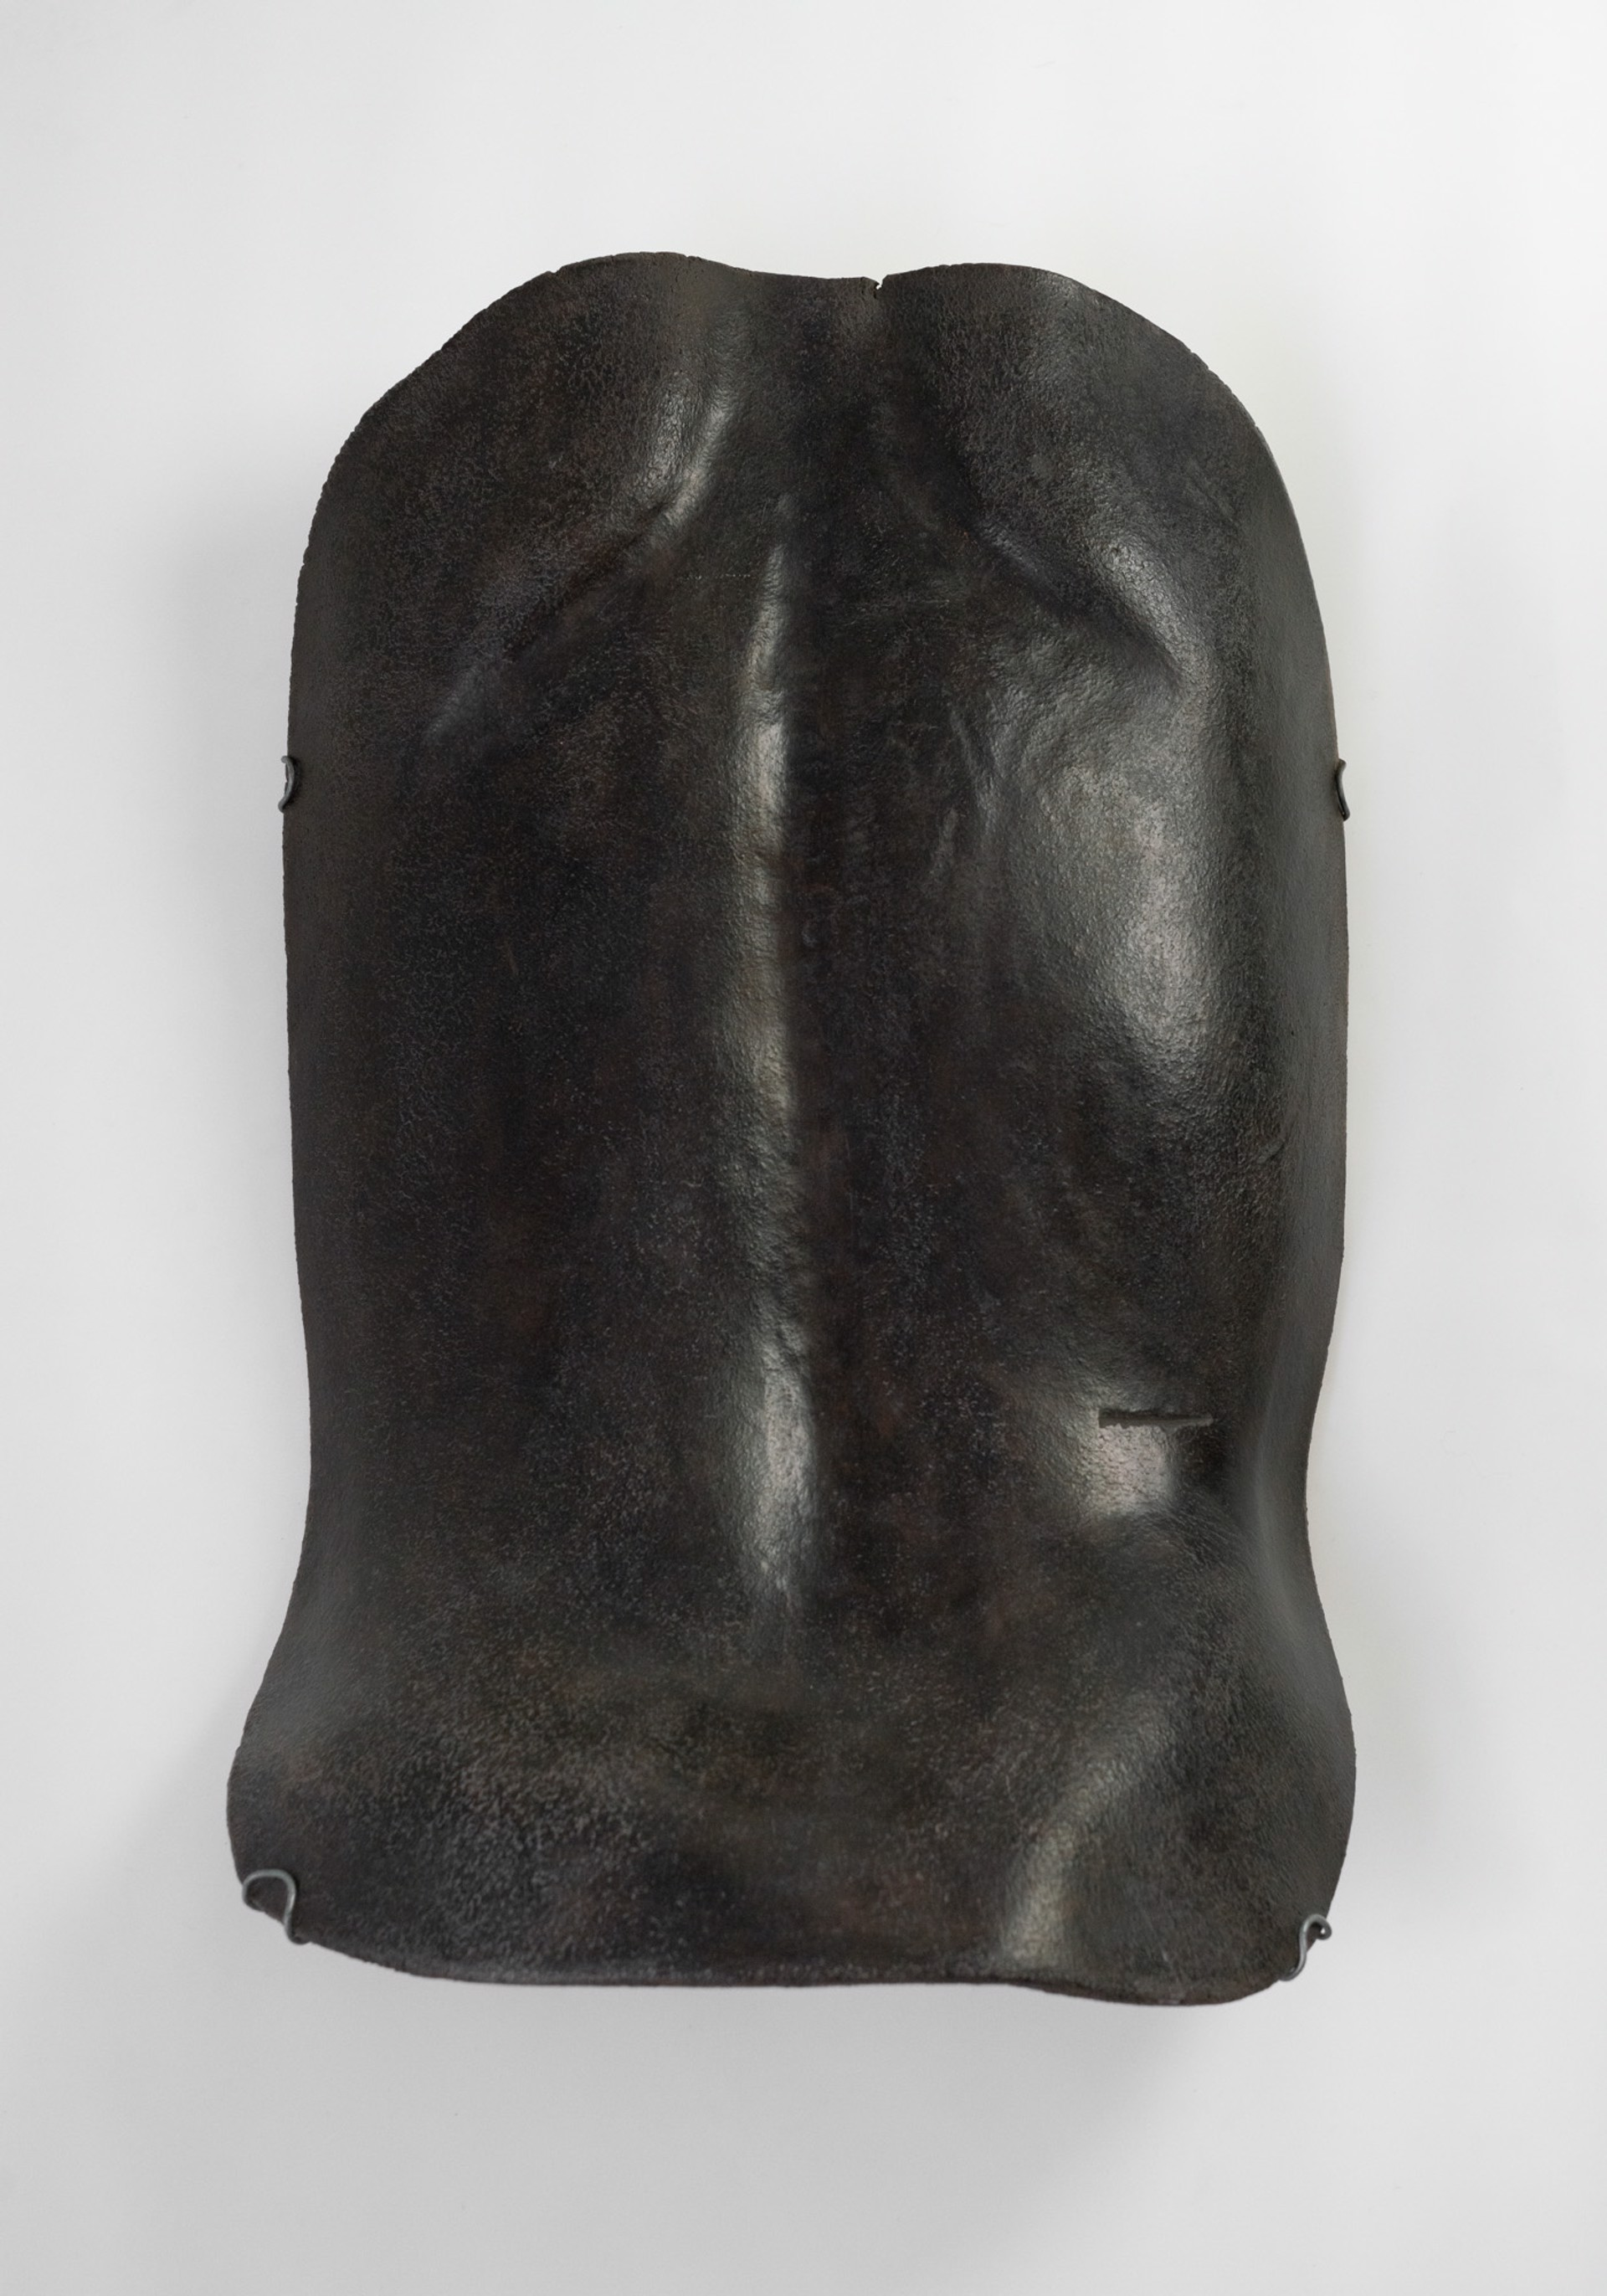 """Great Black Torso"" Wall sculpture by Claire de Lavallee"